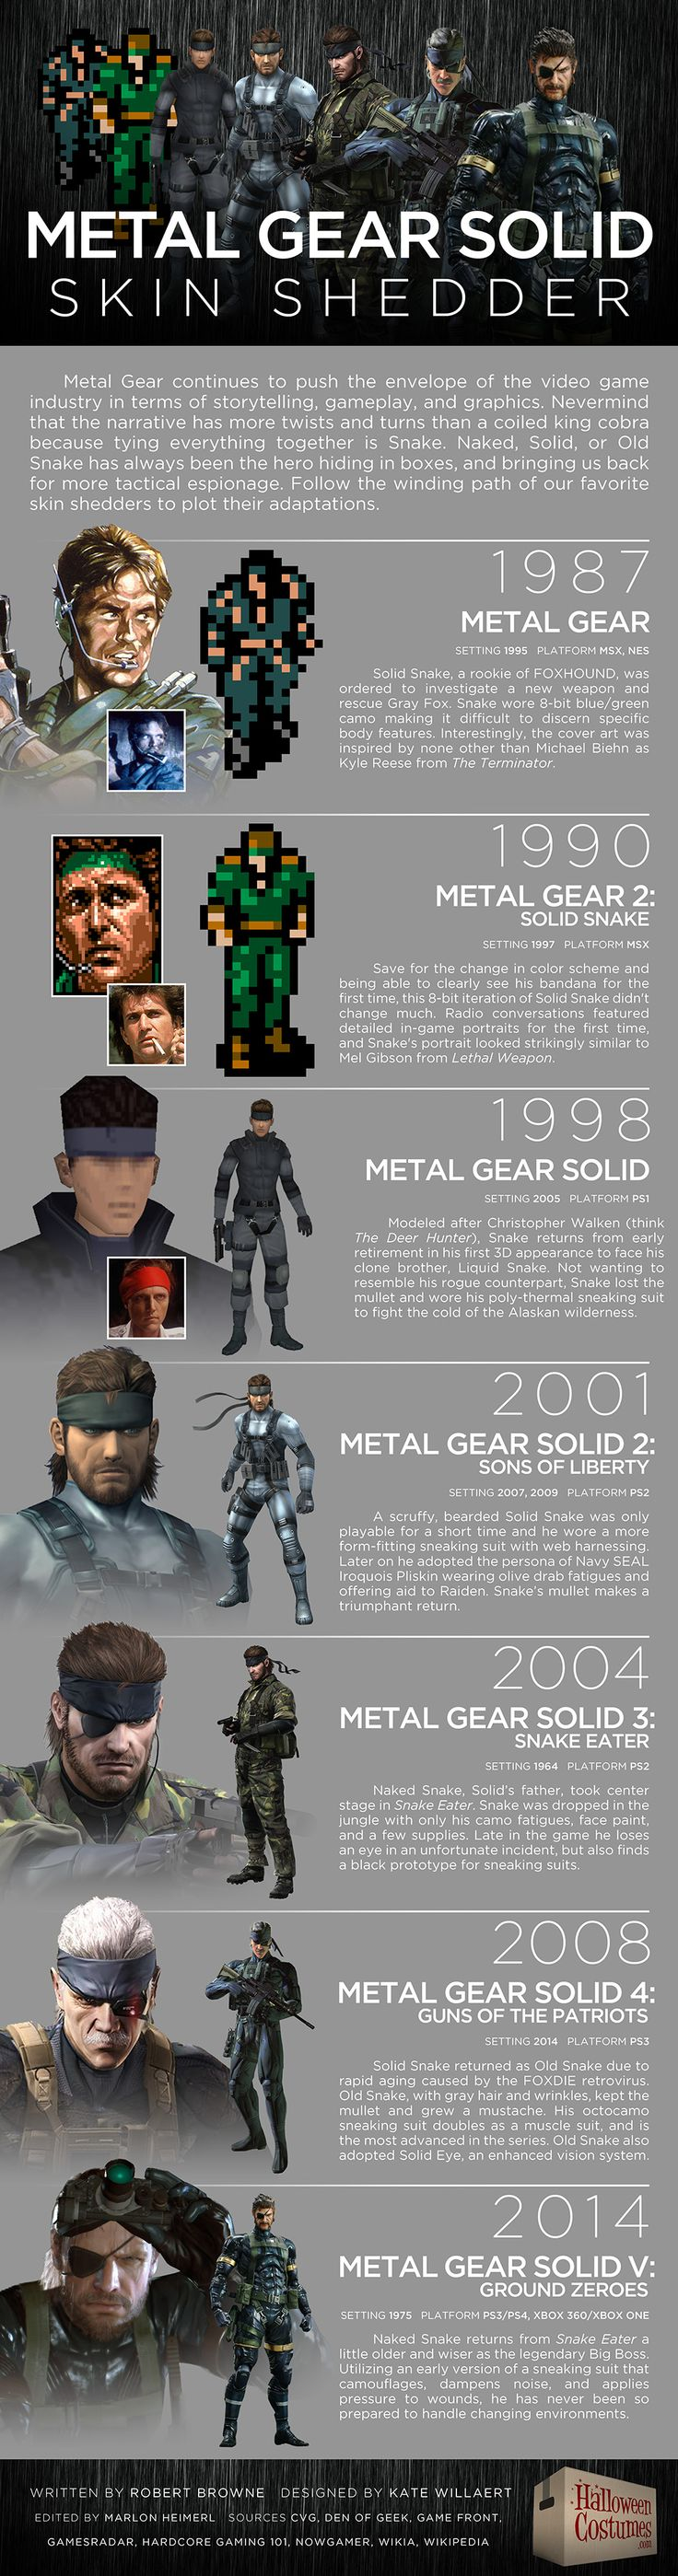 Metal Gear Solid: Skin Shedder [Infographic]